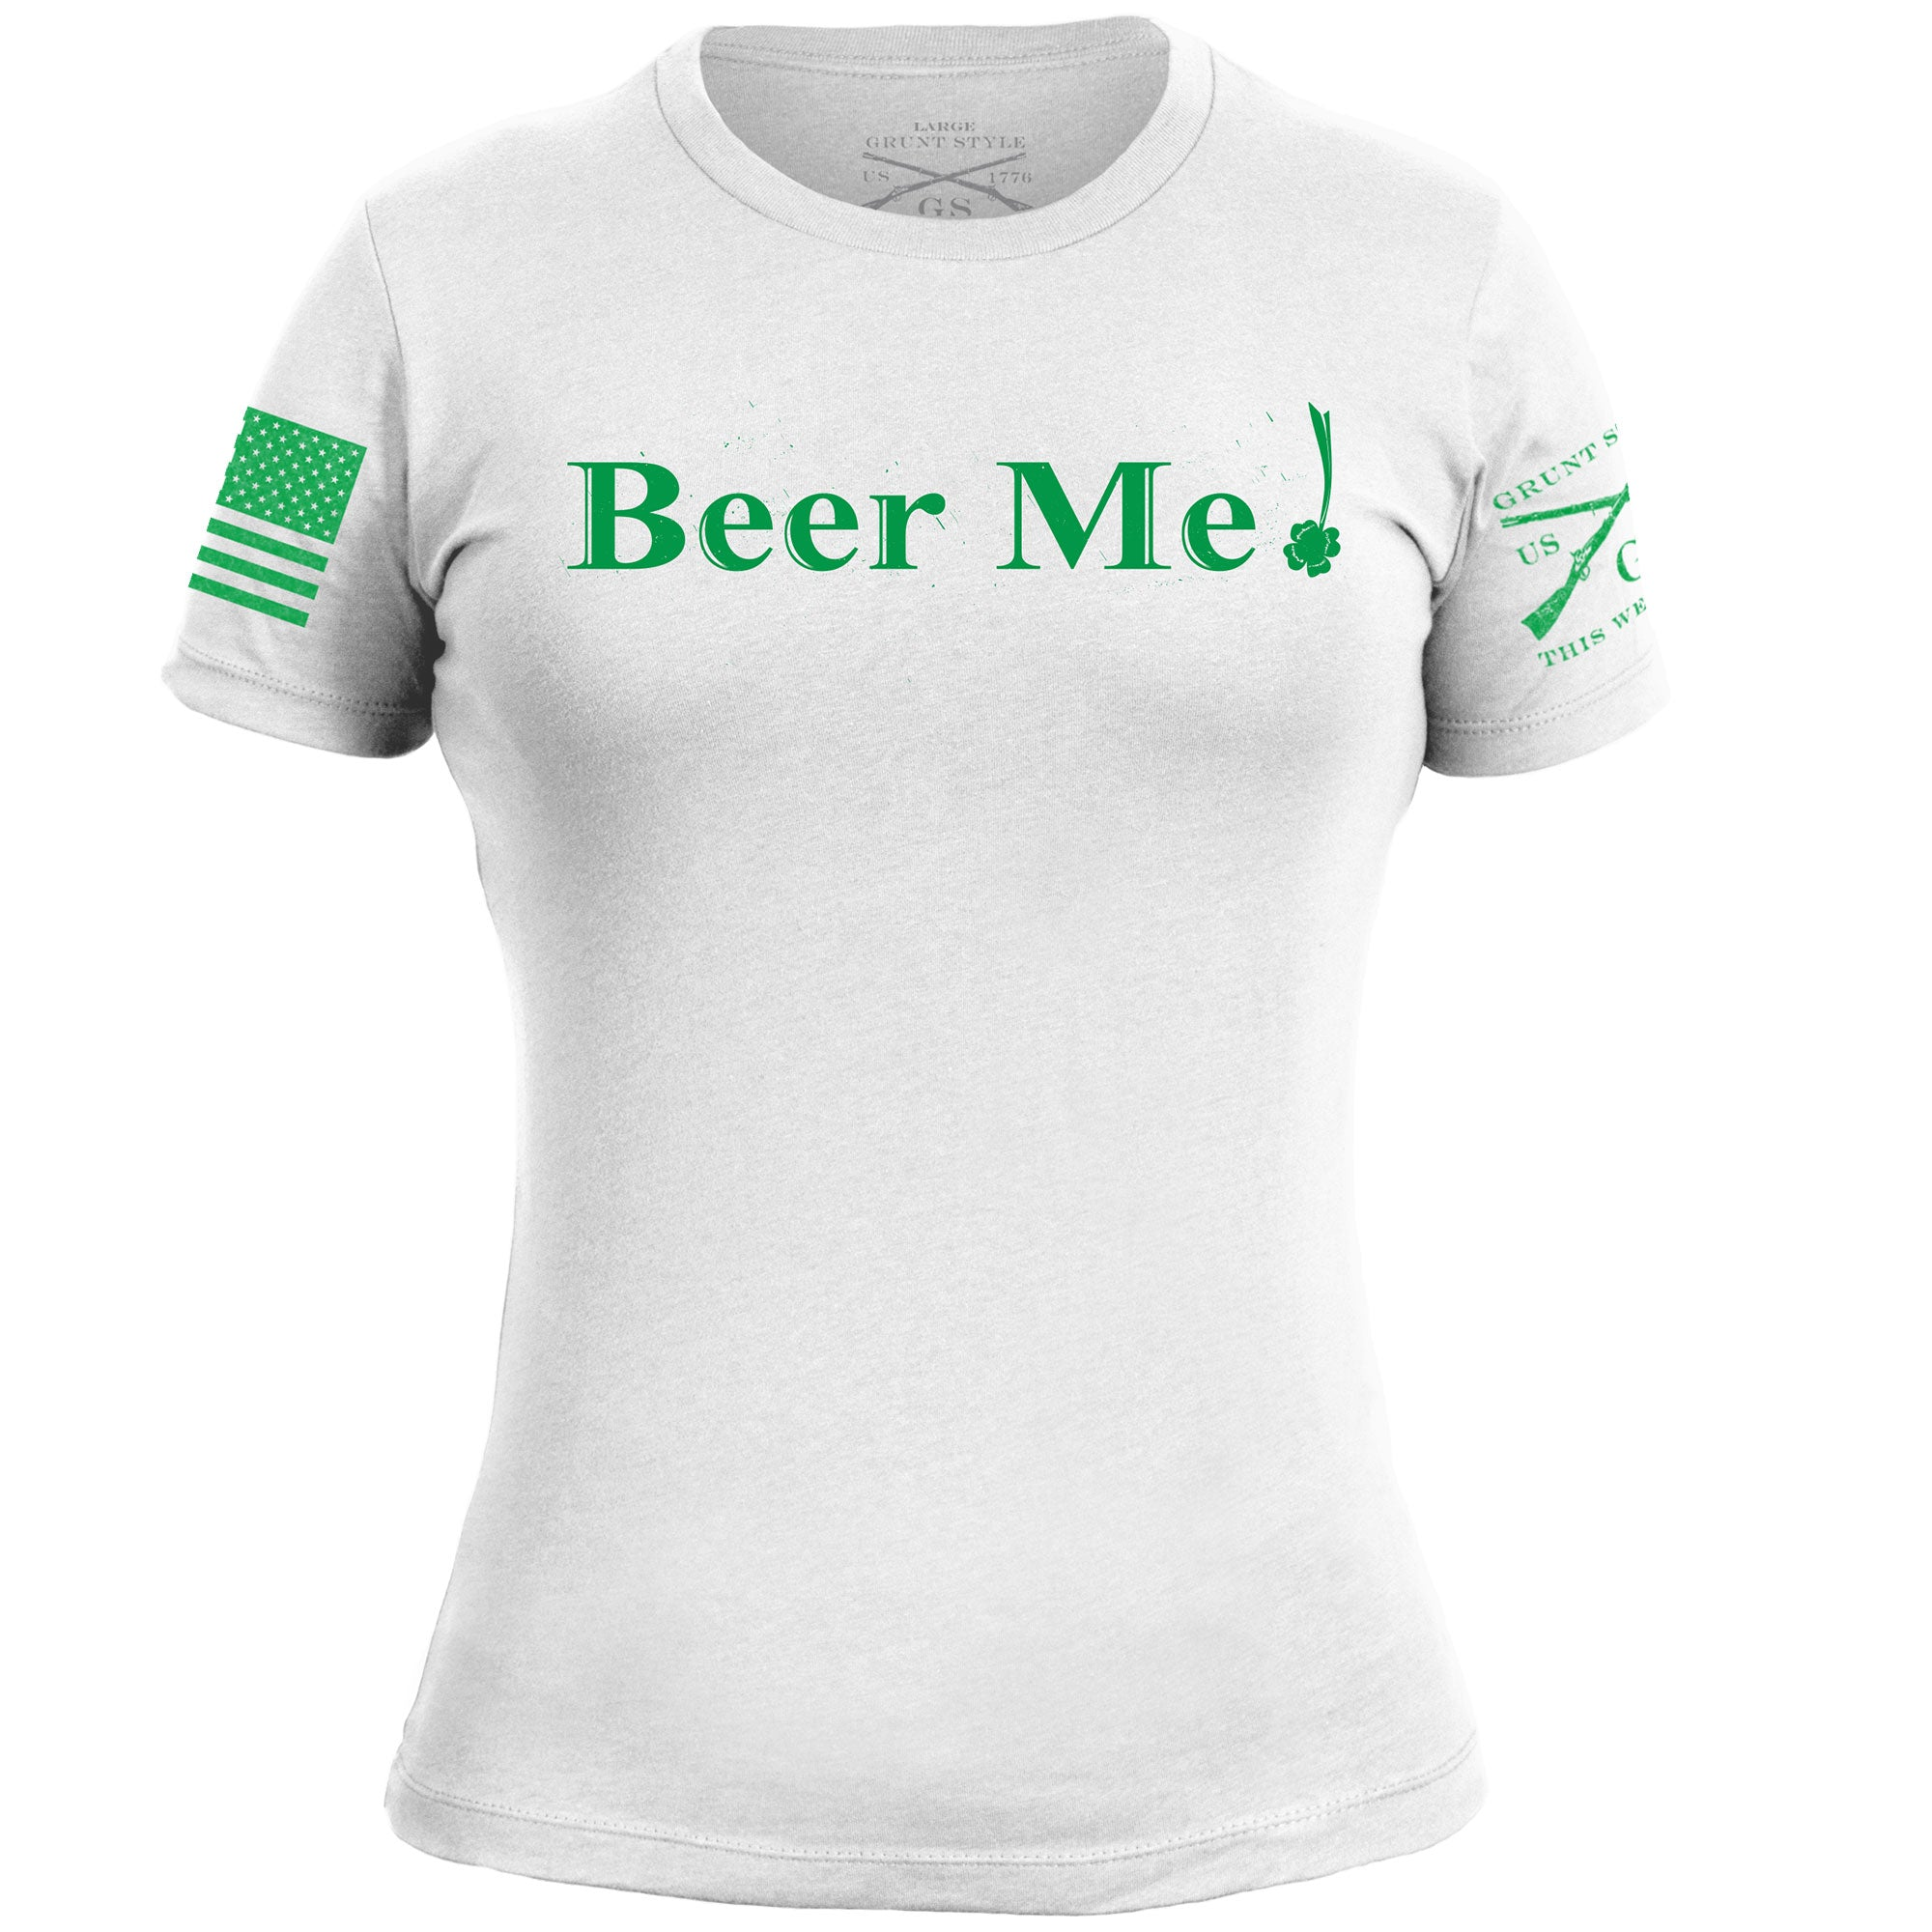 Beer Me Women's - White